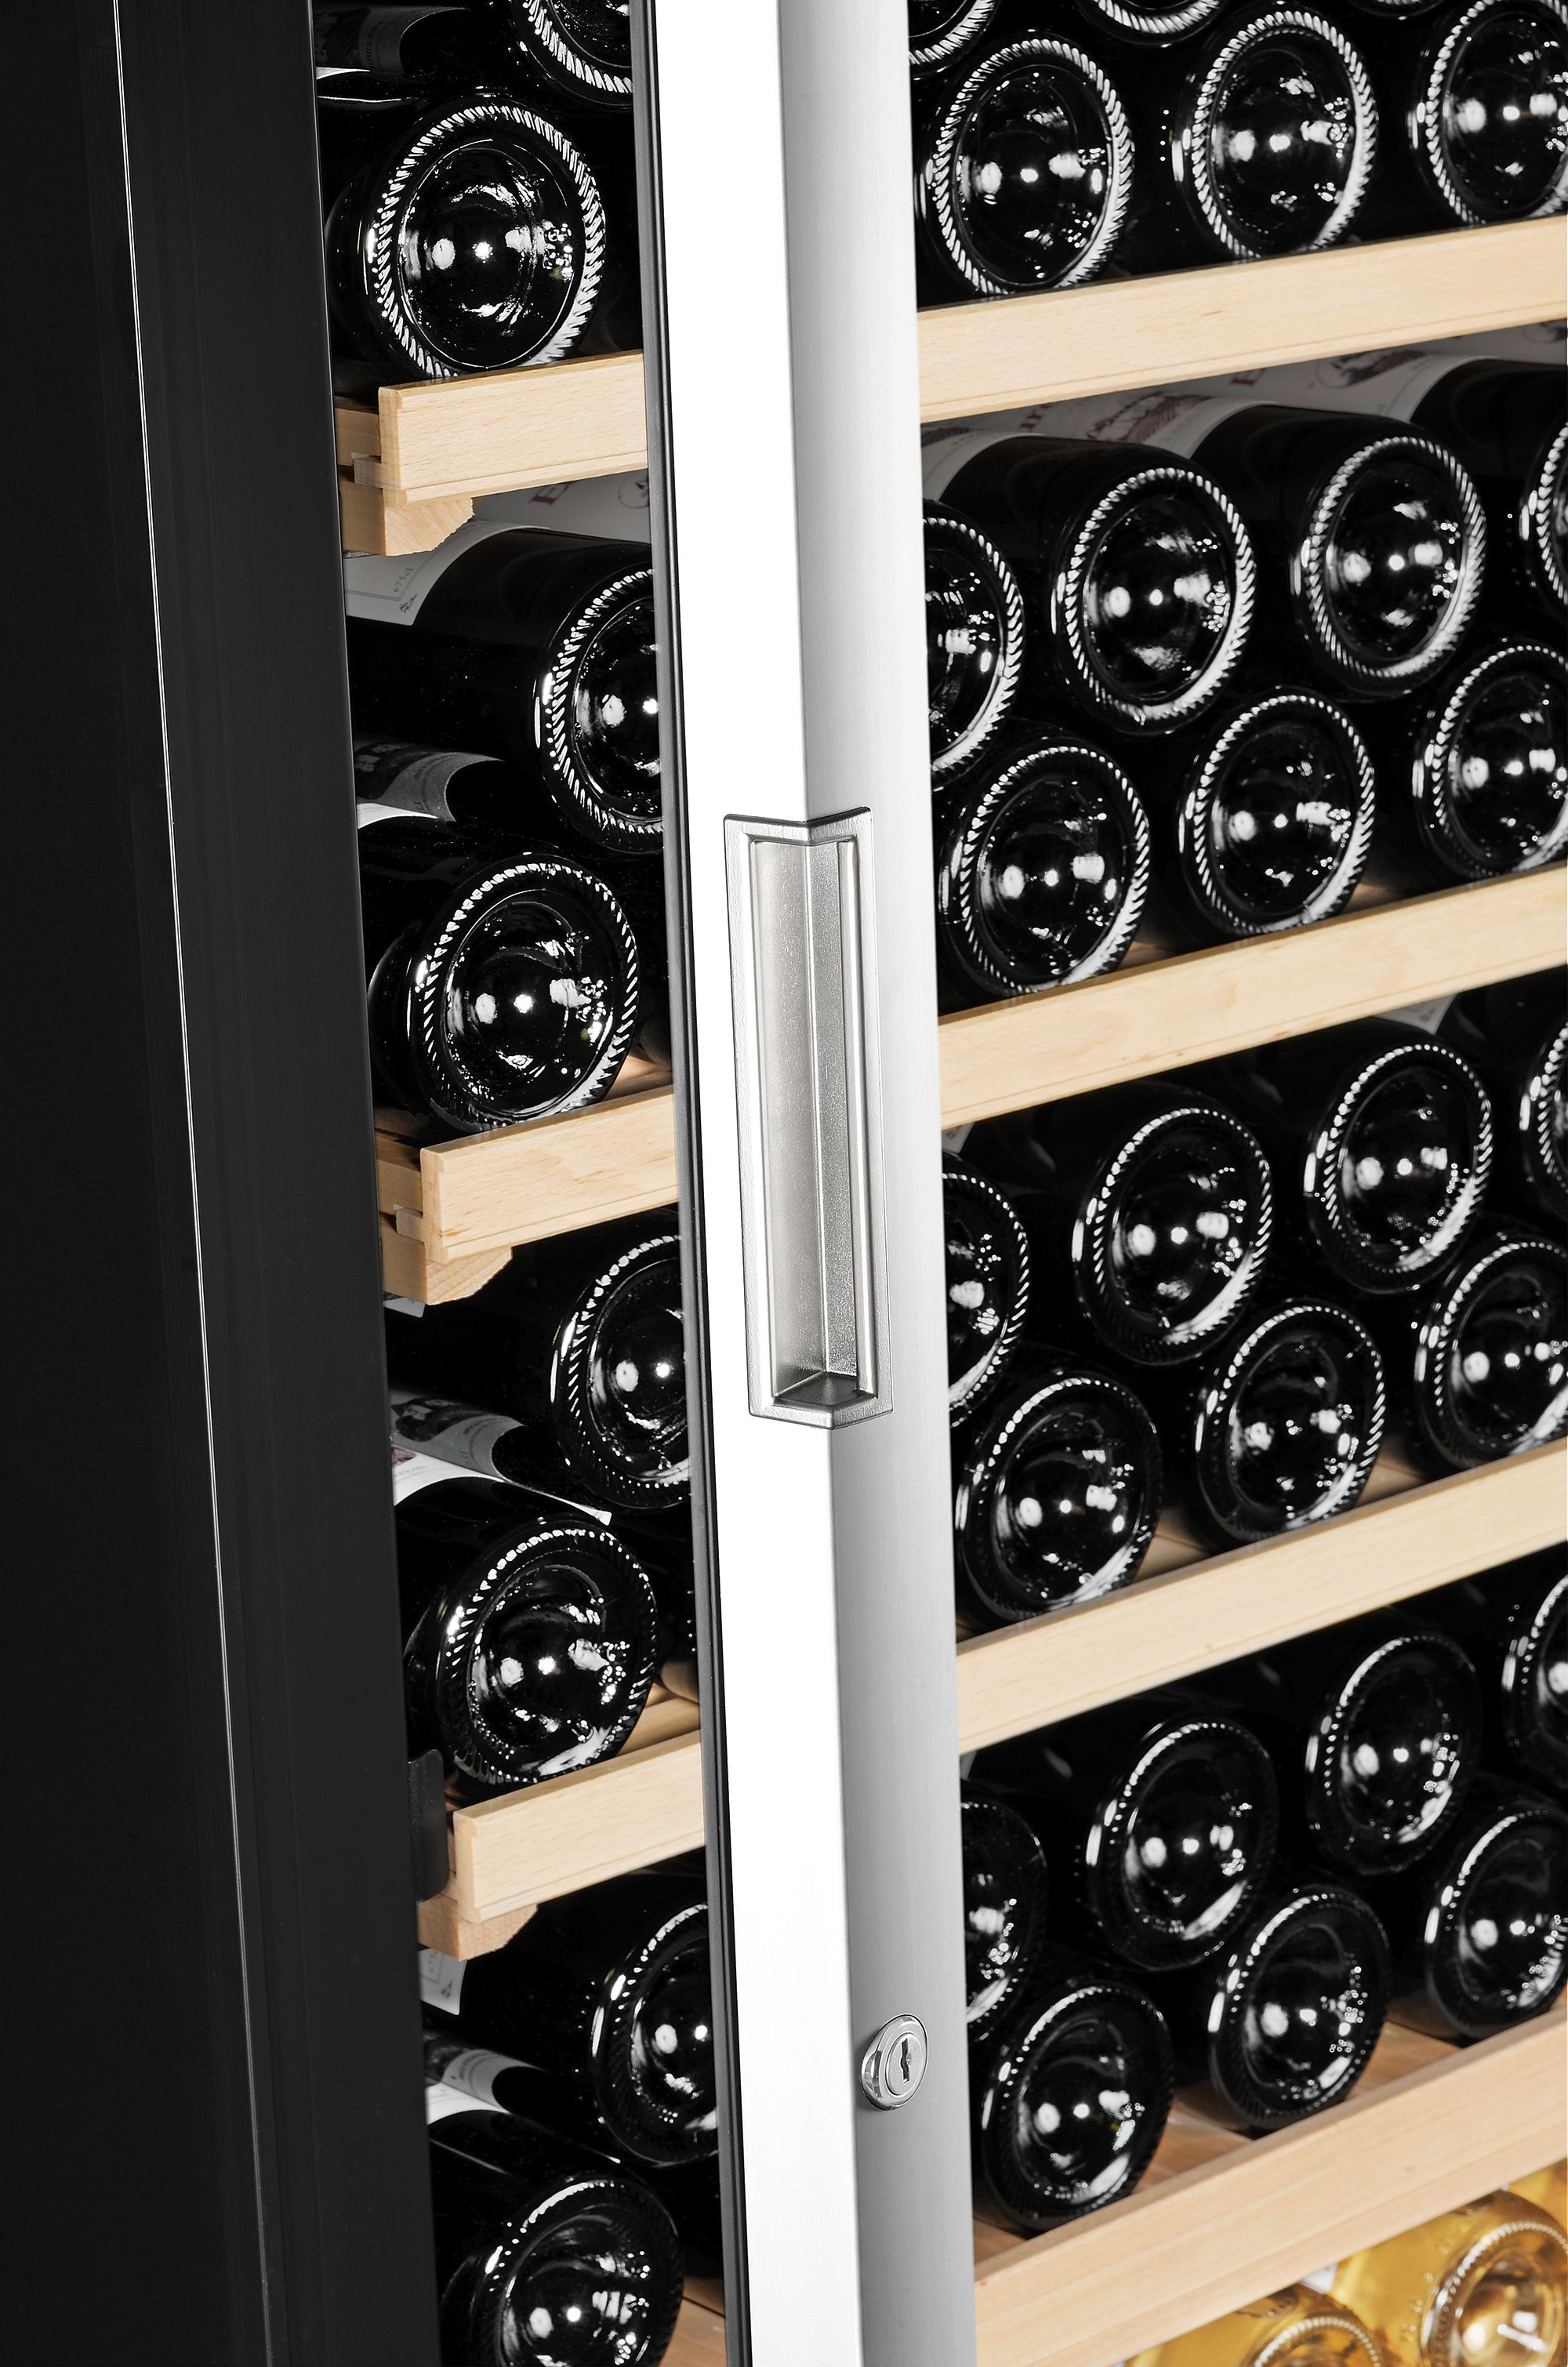 Artevino Wine Cellar Artevino Ii By Eurocave Wine And Beverage Center